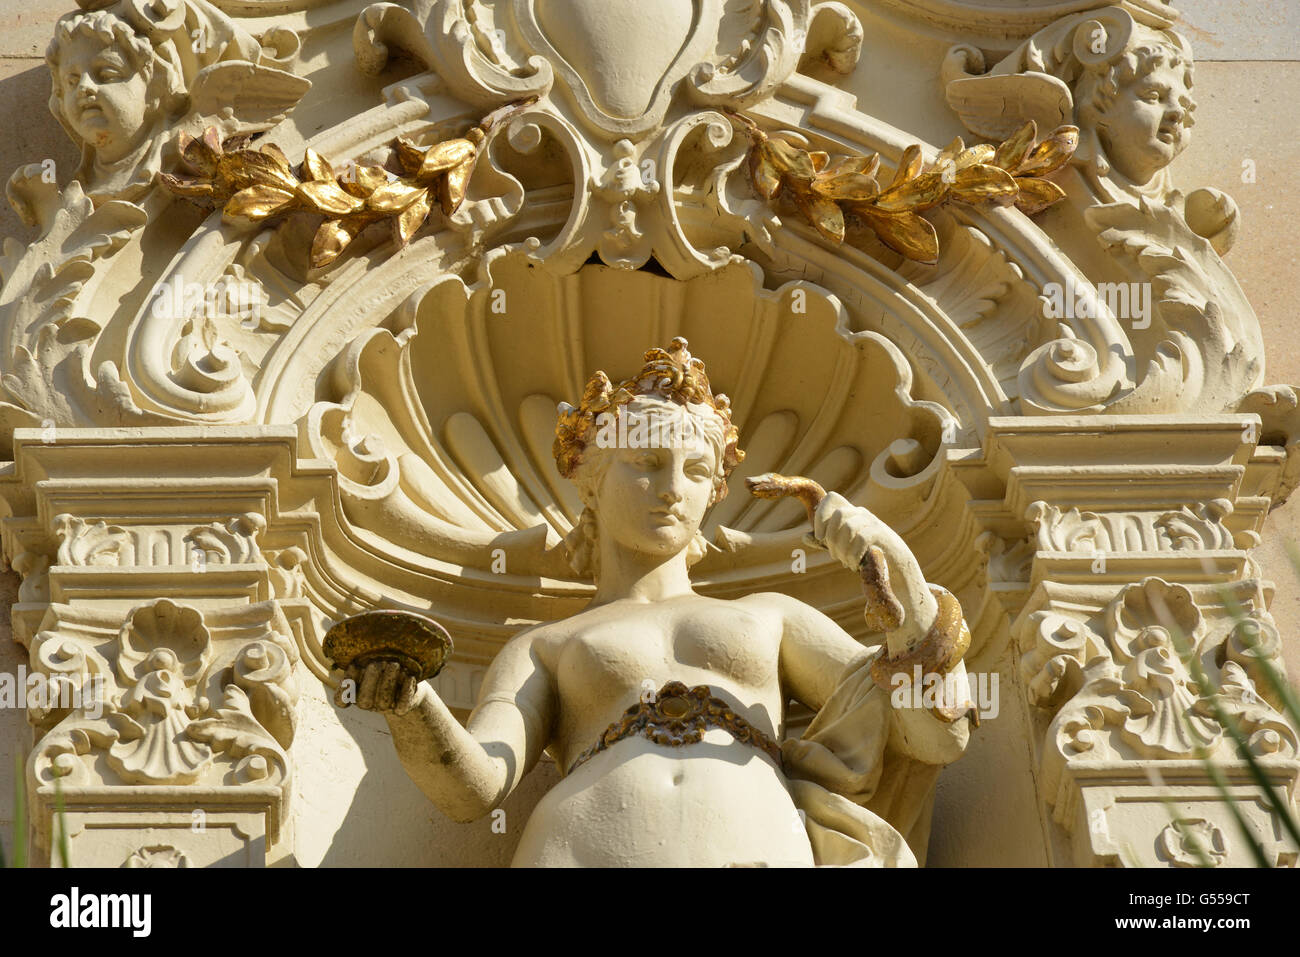 Statue of Hygieia, the goddess/personification of health, cleanliness and hygiene, on the Colonnades of Marianske - Stock Image